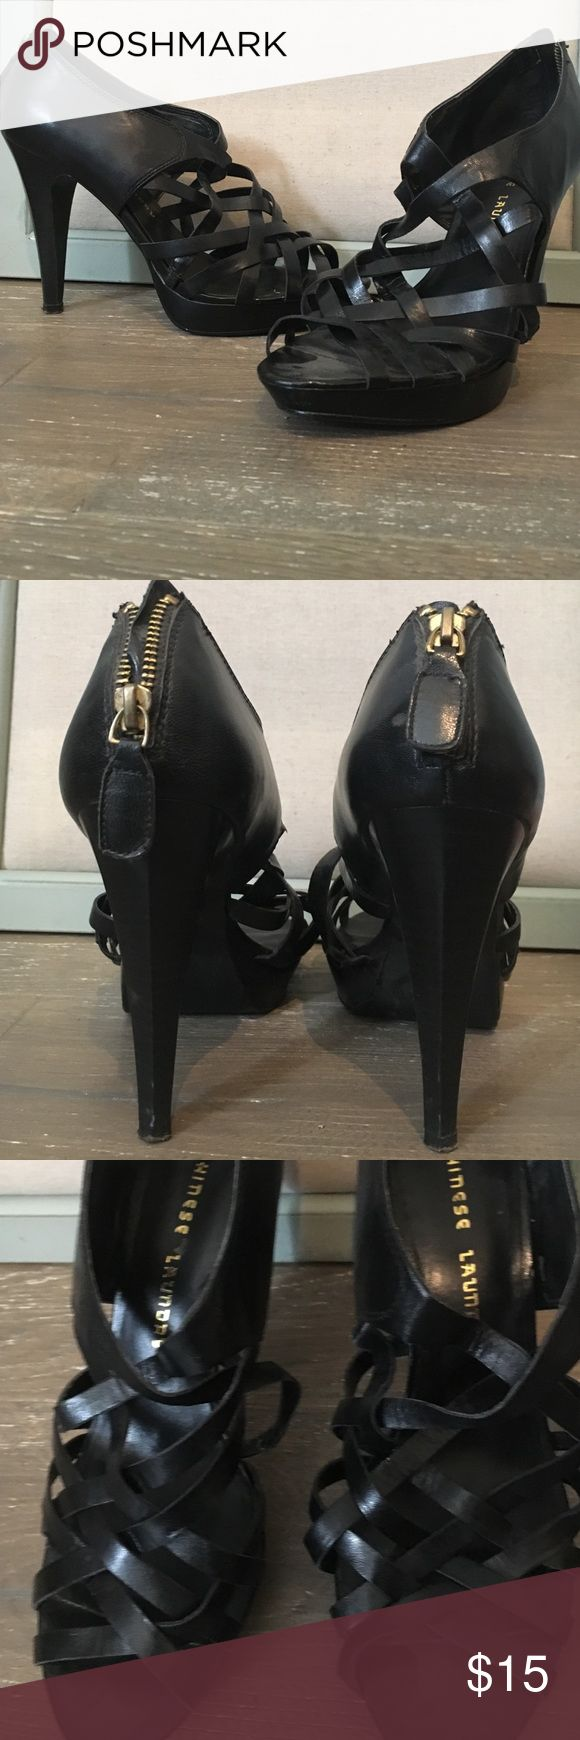 Black heel with straps on the front Black heels with straps from the middle of the foot to the toes Chinese Laundry Shoes Heels